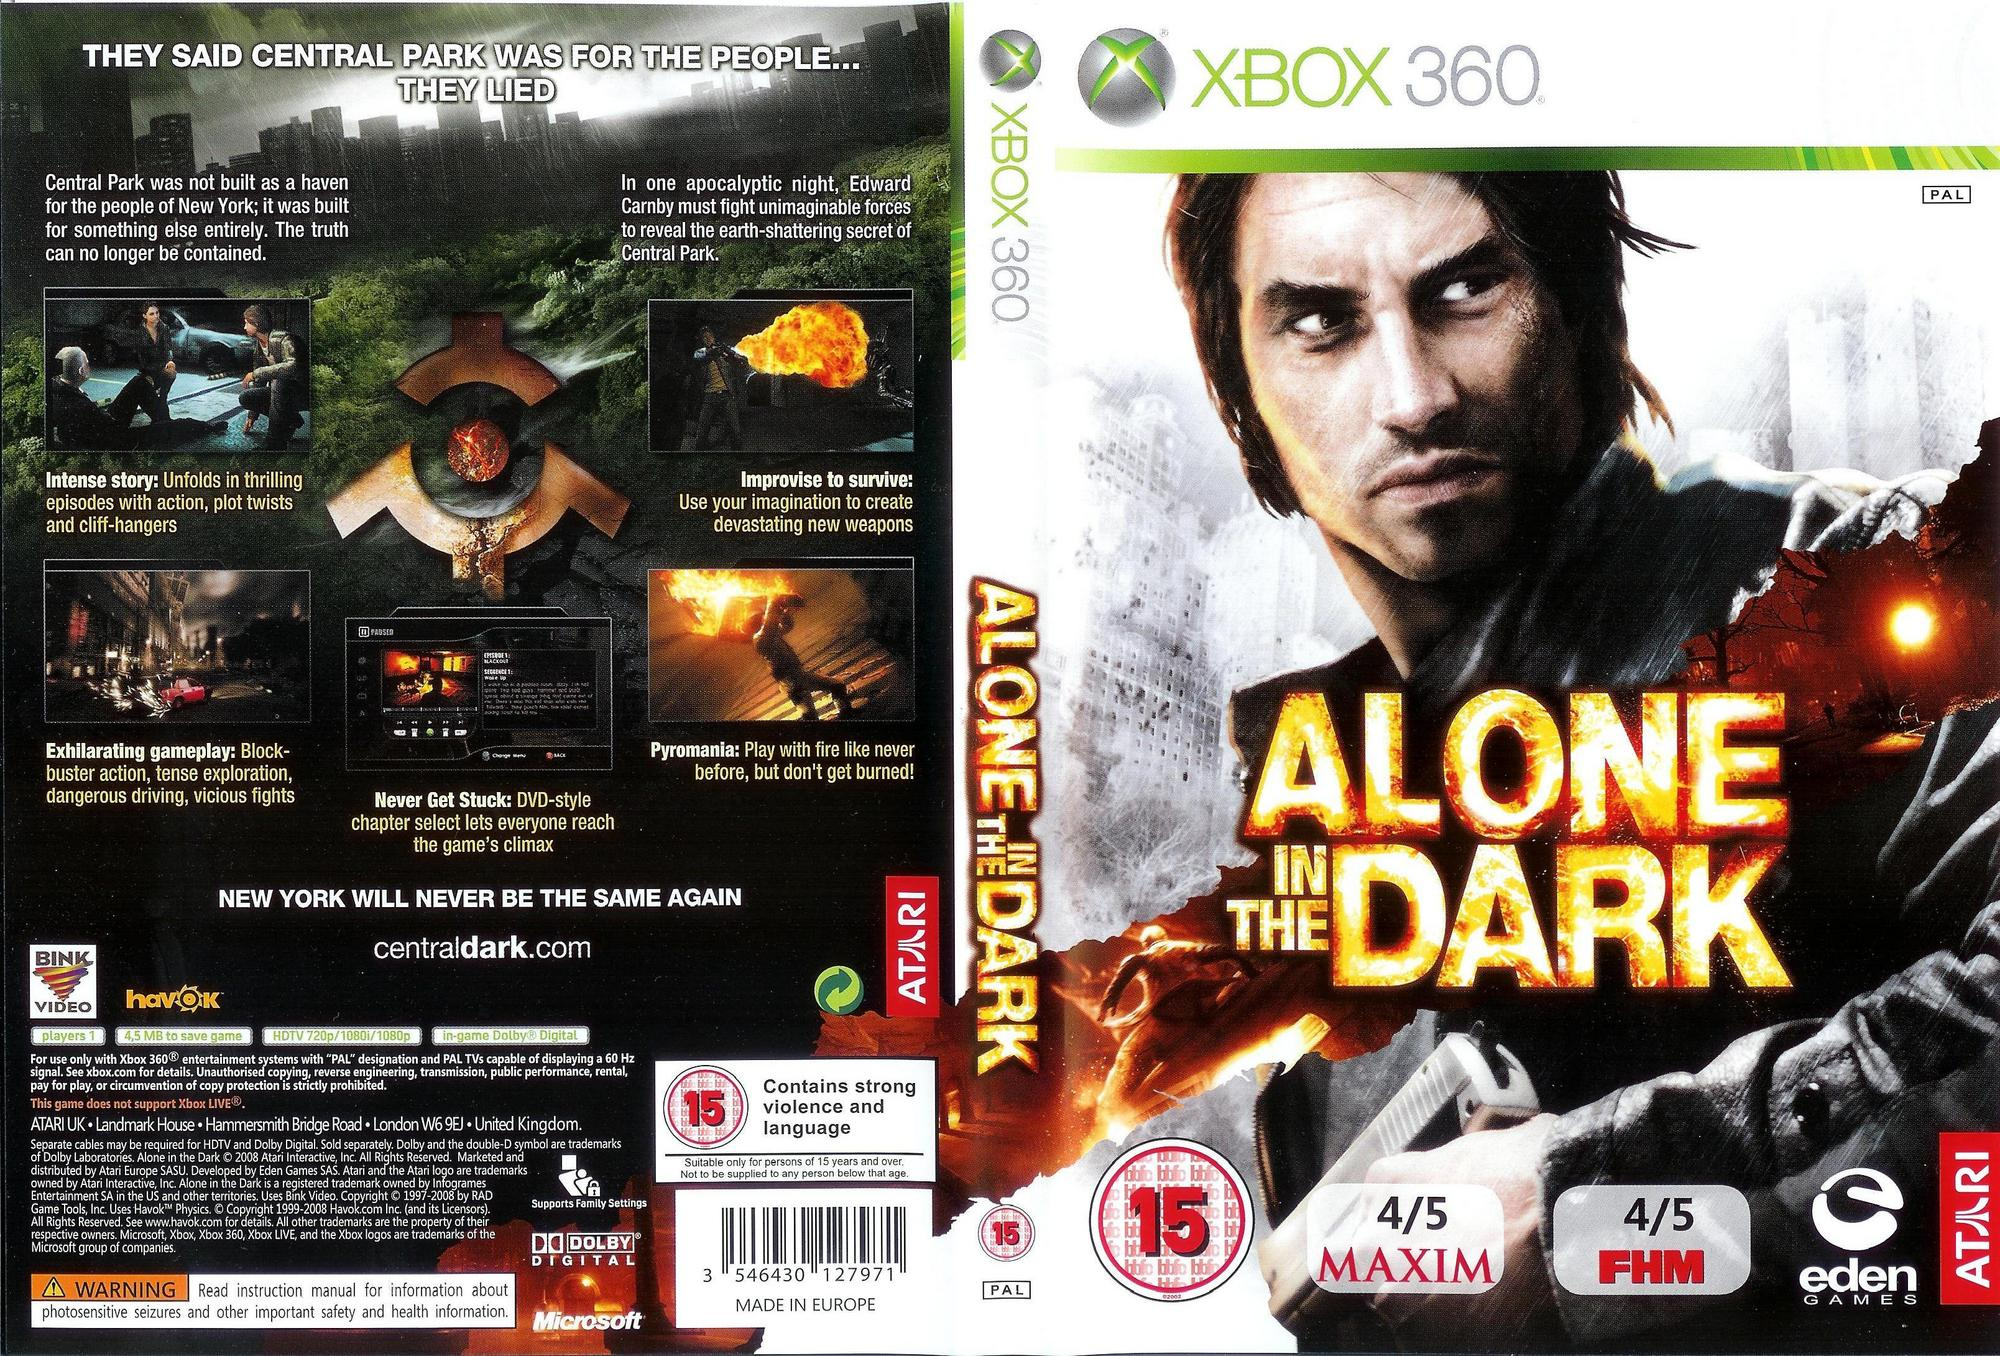 Alone_In_The_Dark-DVD+-XBOX360.jpg